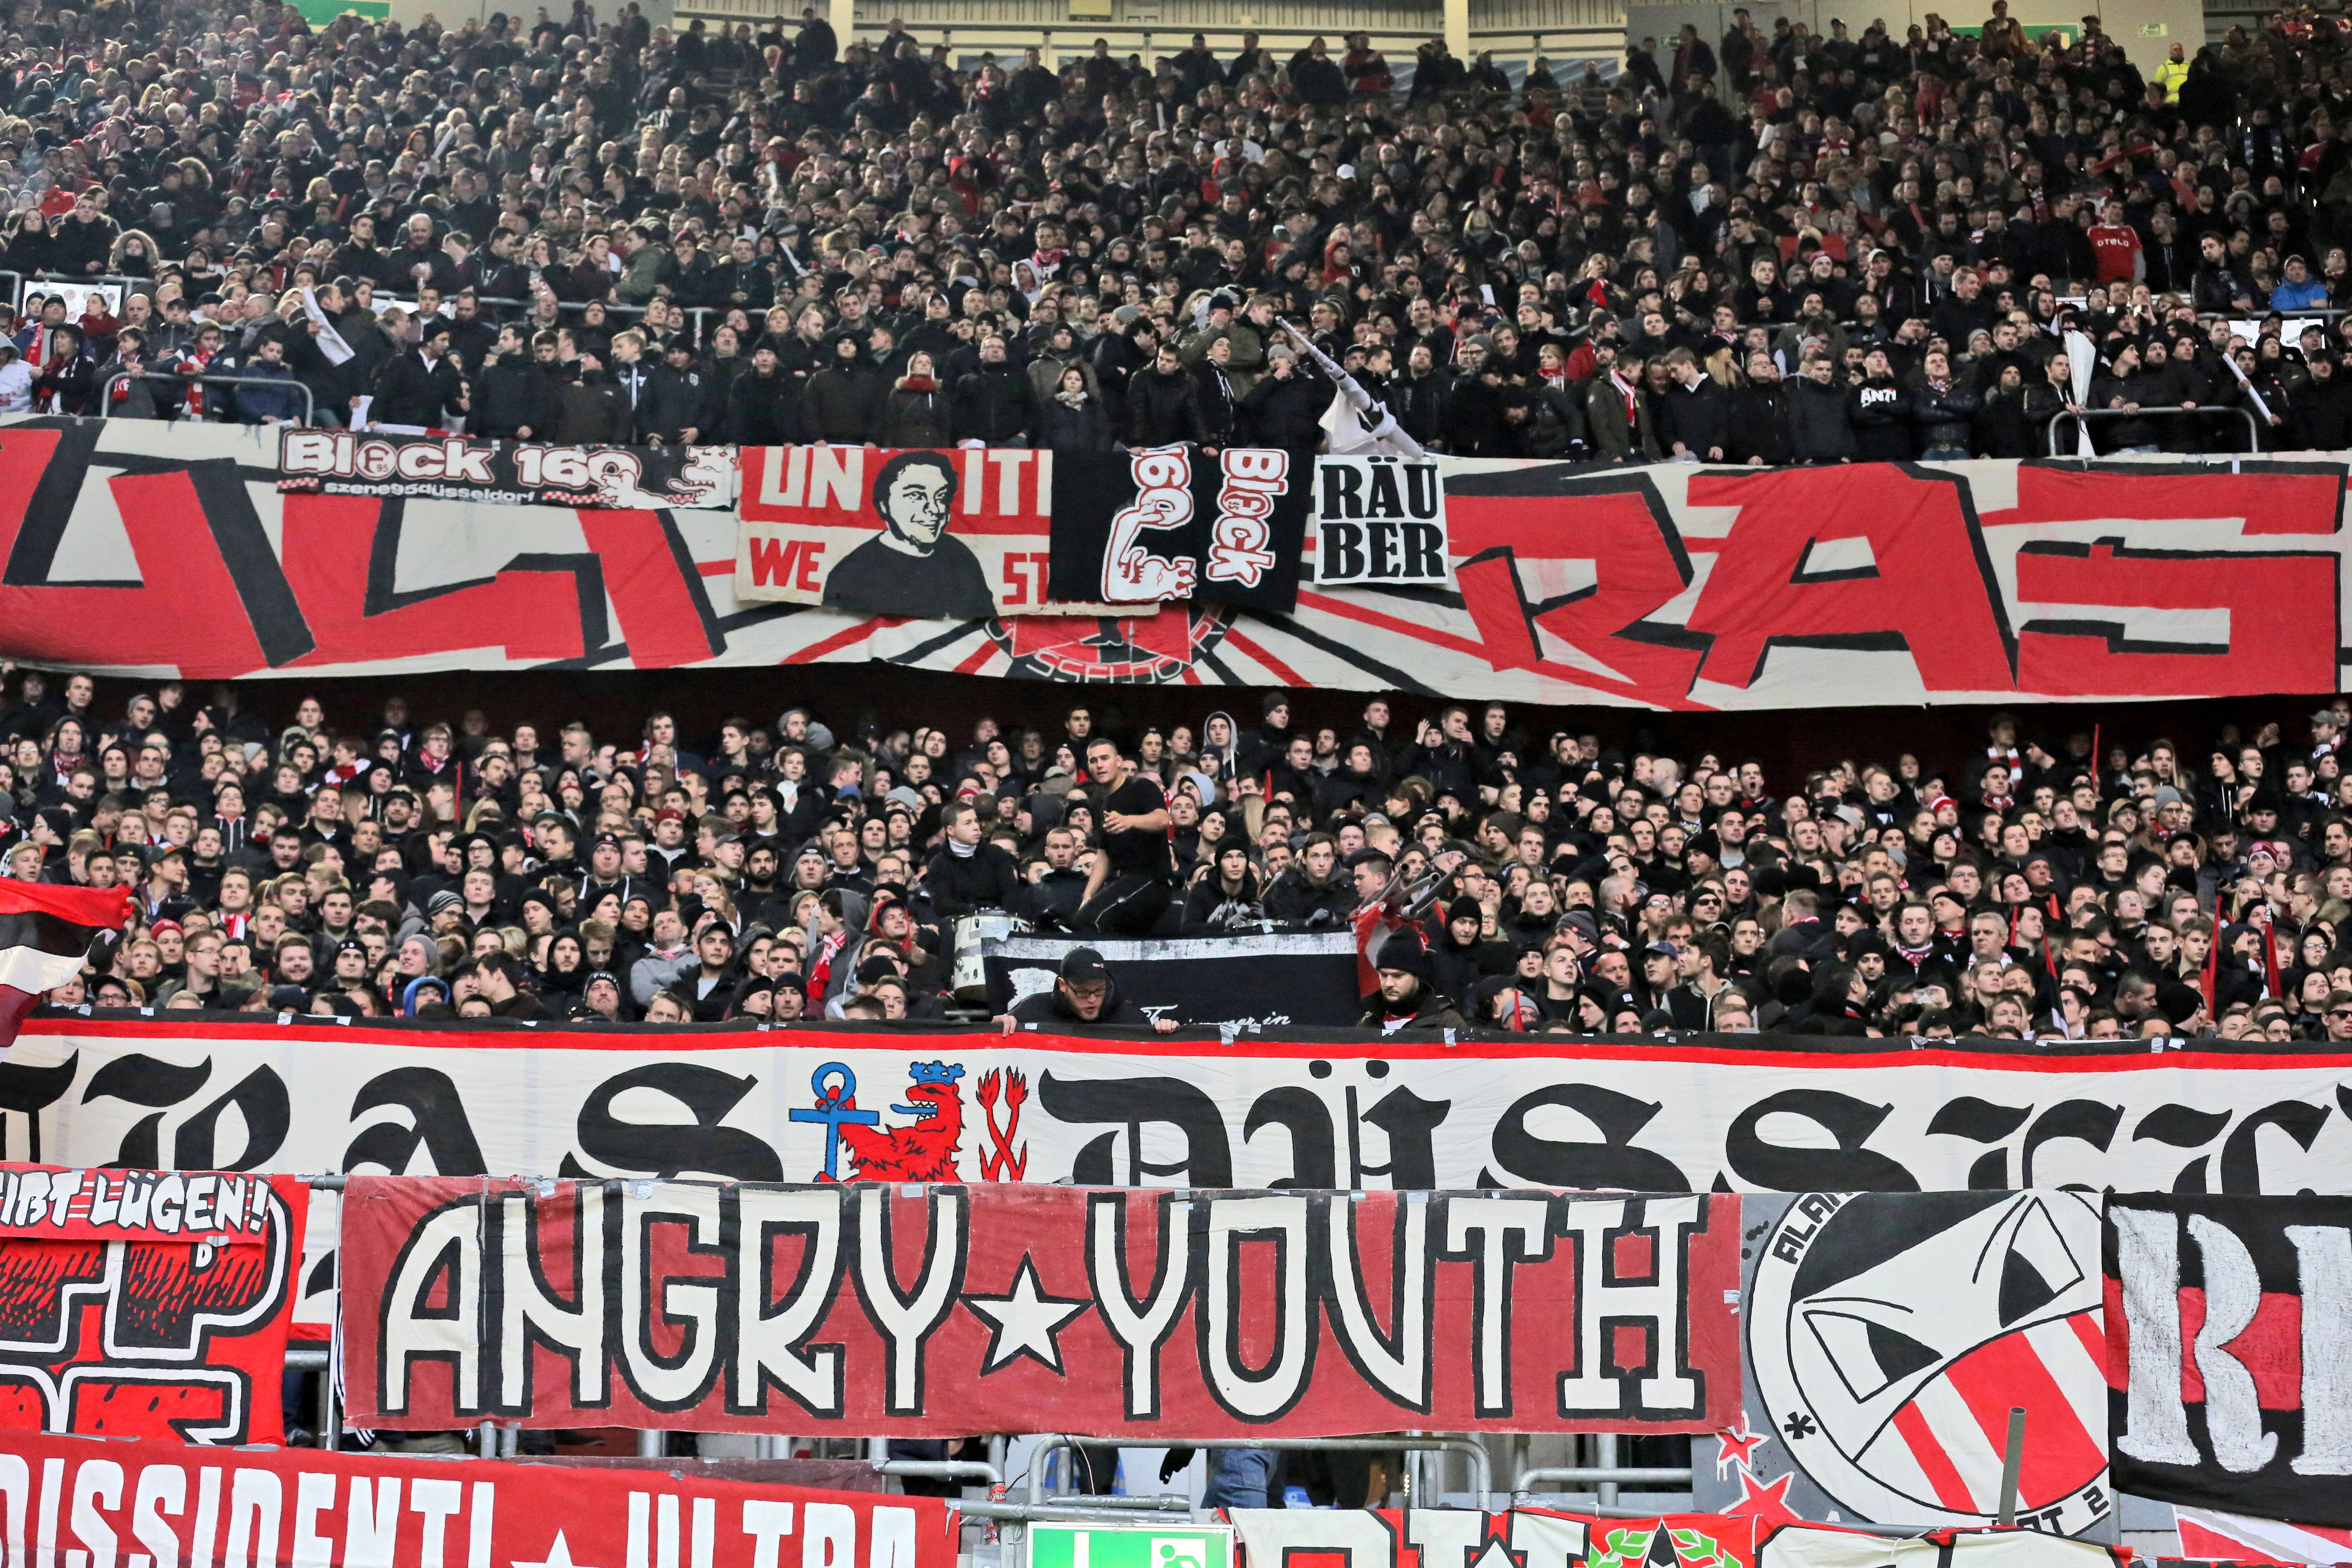 Fankurve von Fortuna Düsseldorf Ultras Angry Youth Fortuna ...